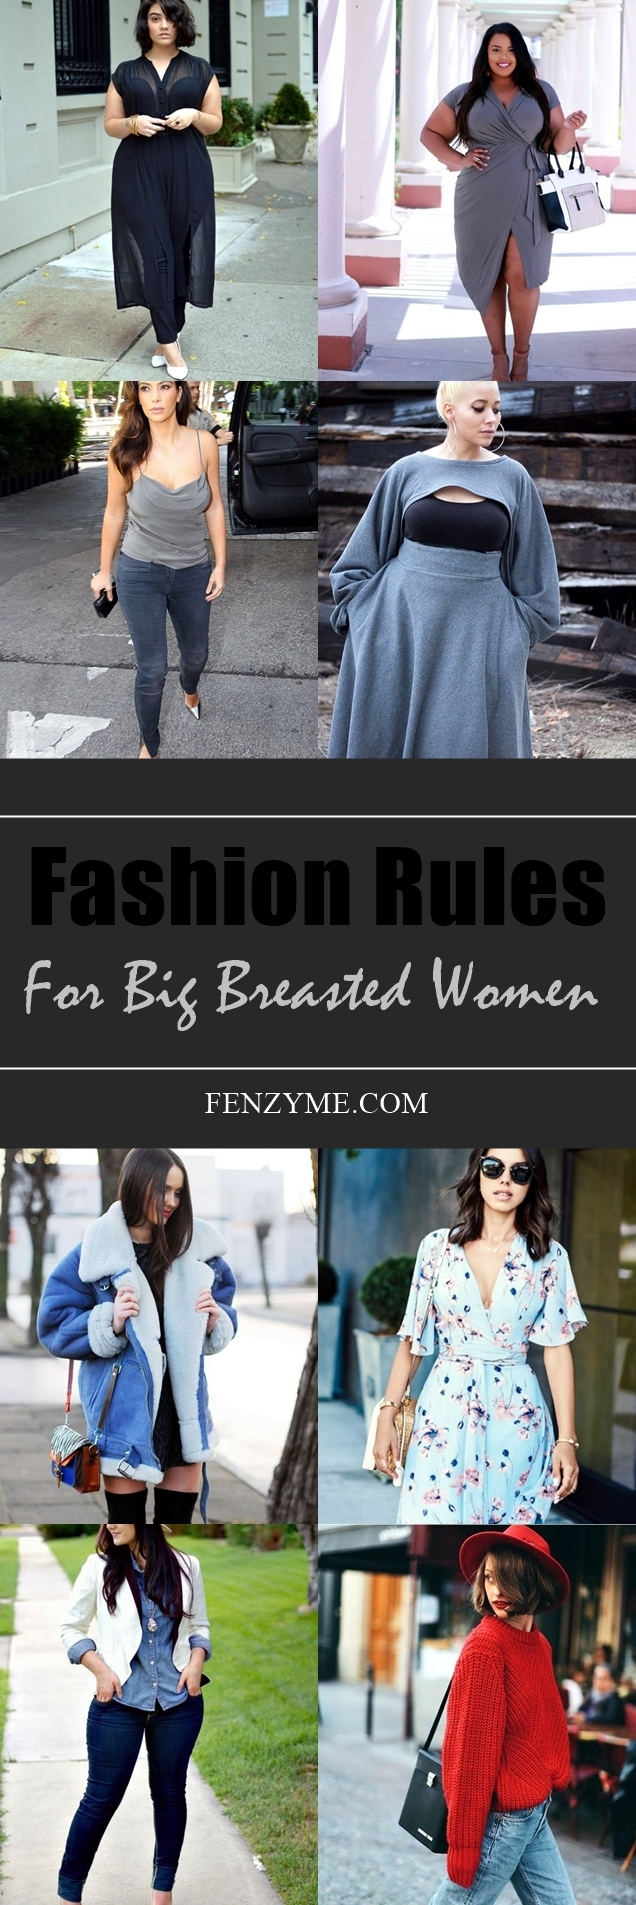 fashion-rules-for-big-breasted-women-2-tile